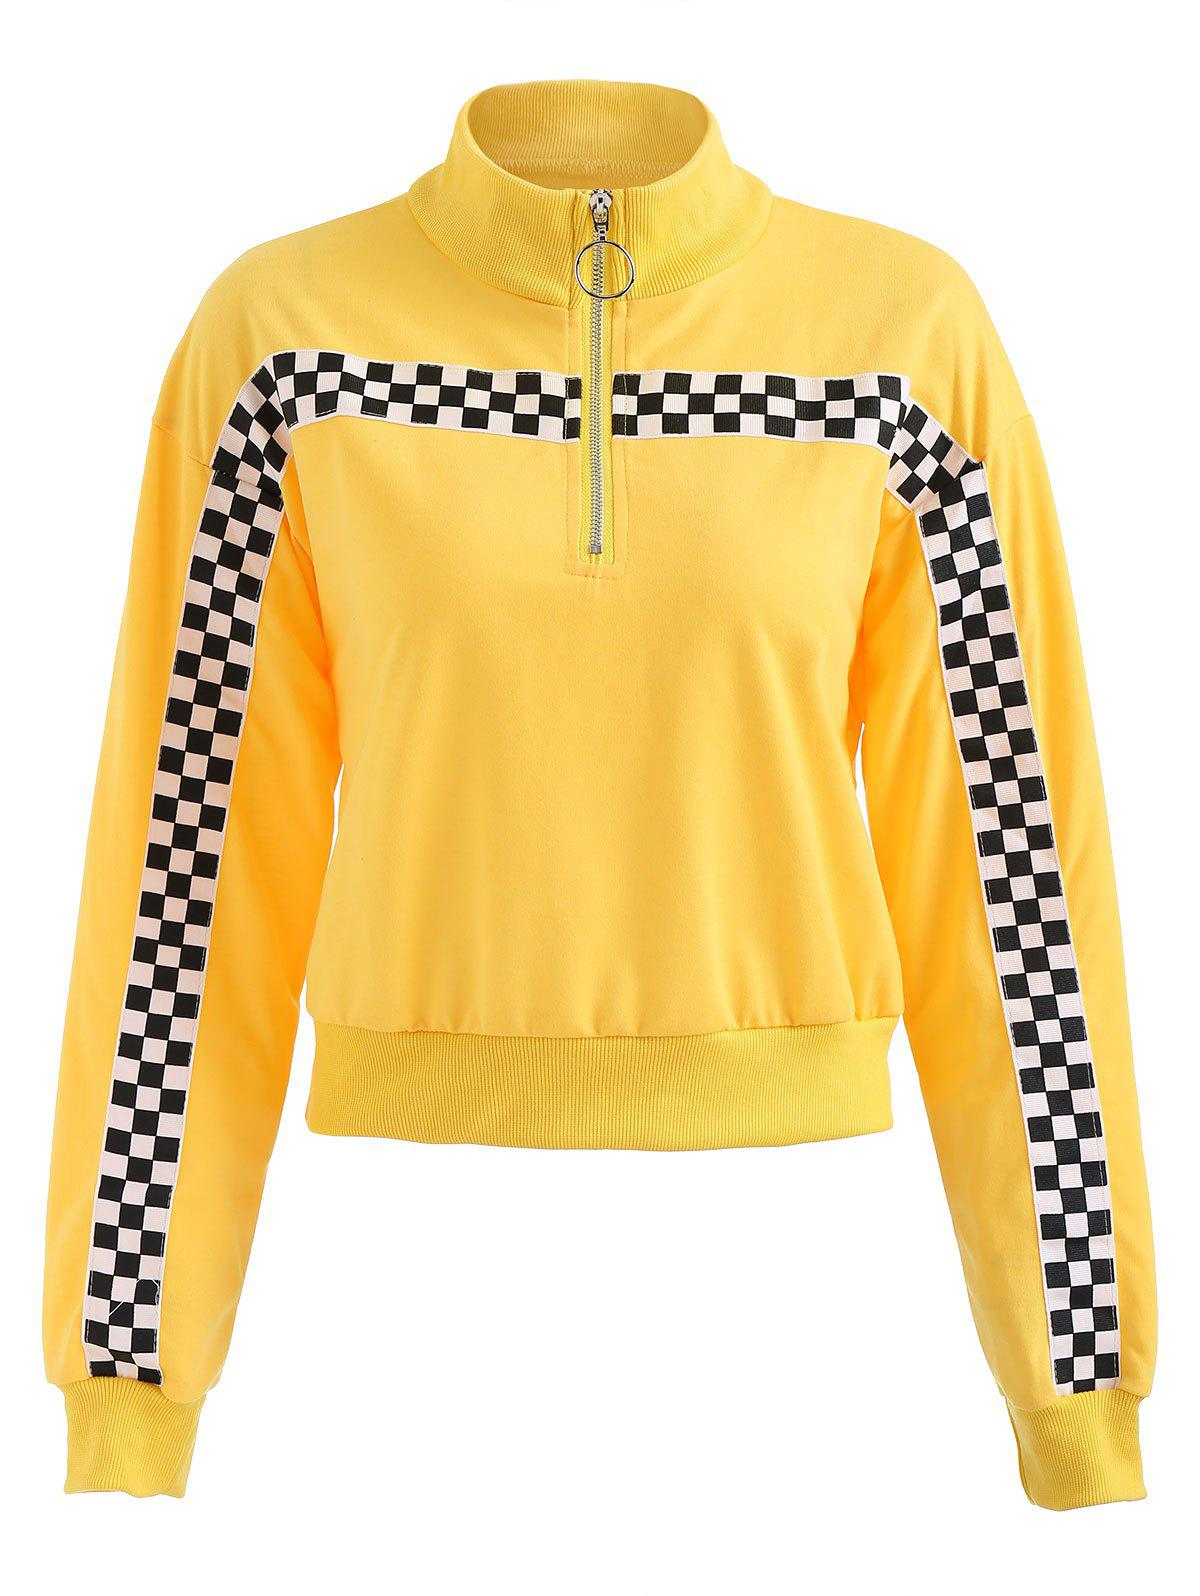 Half zip Check Panel Top - YELLOW L